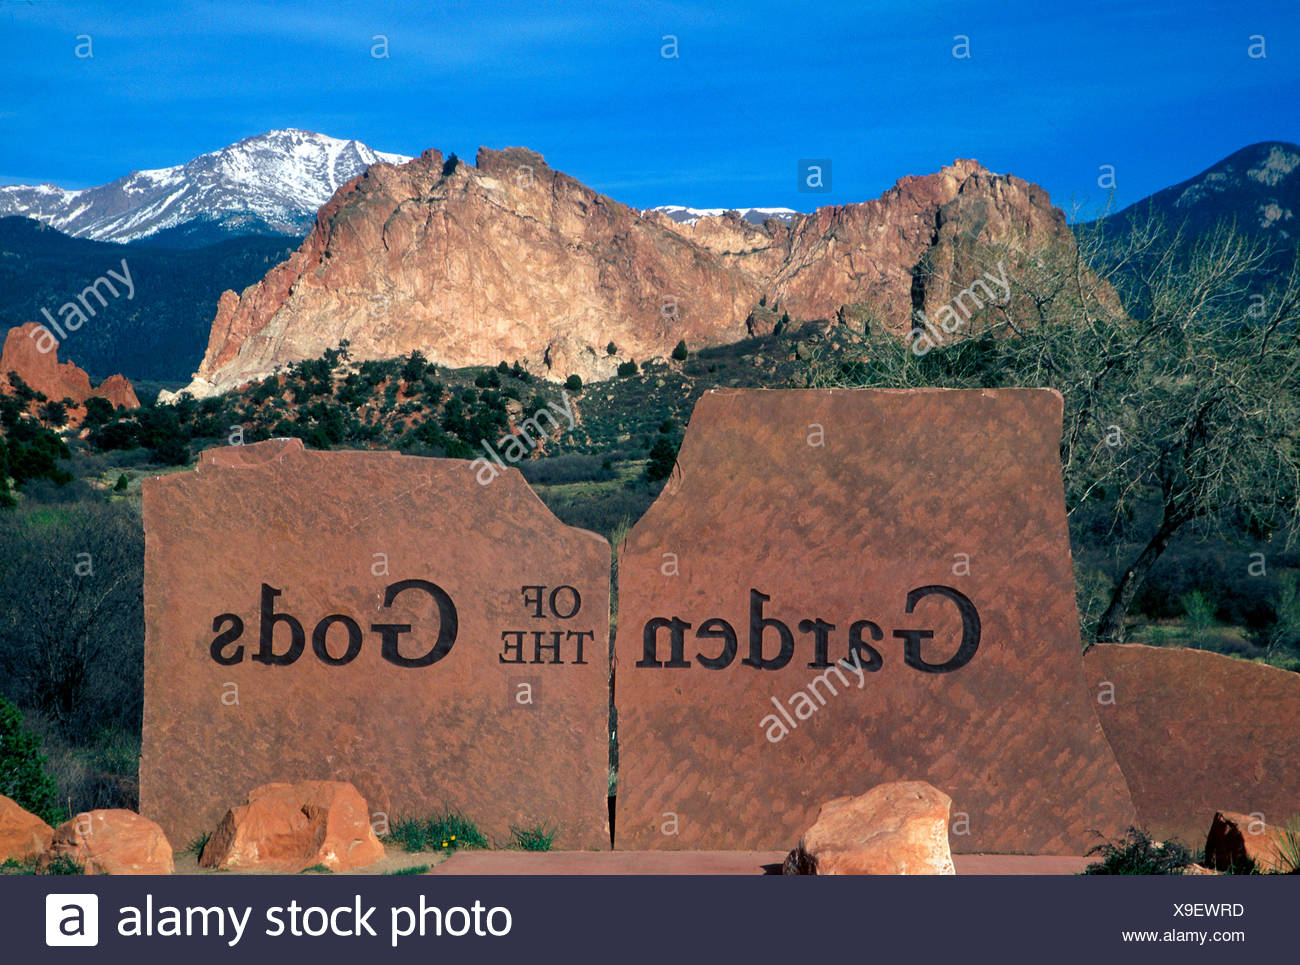 Entrance to the Garden of the Gods Park Stock Photo: 281225377 - Alamy